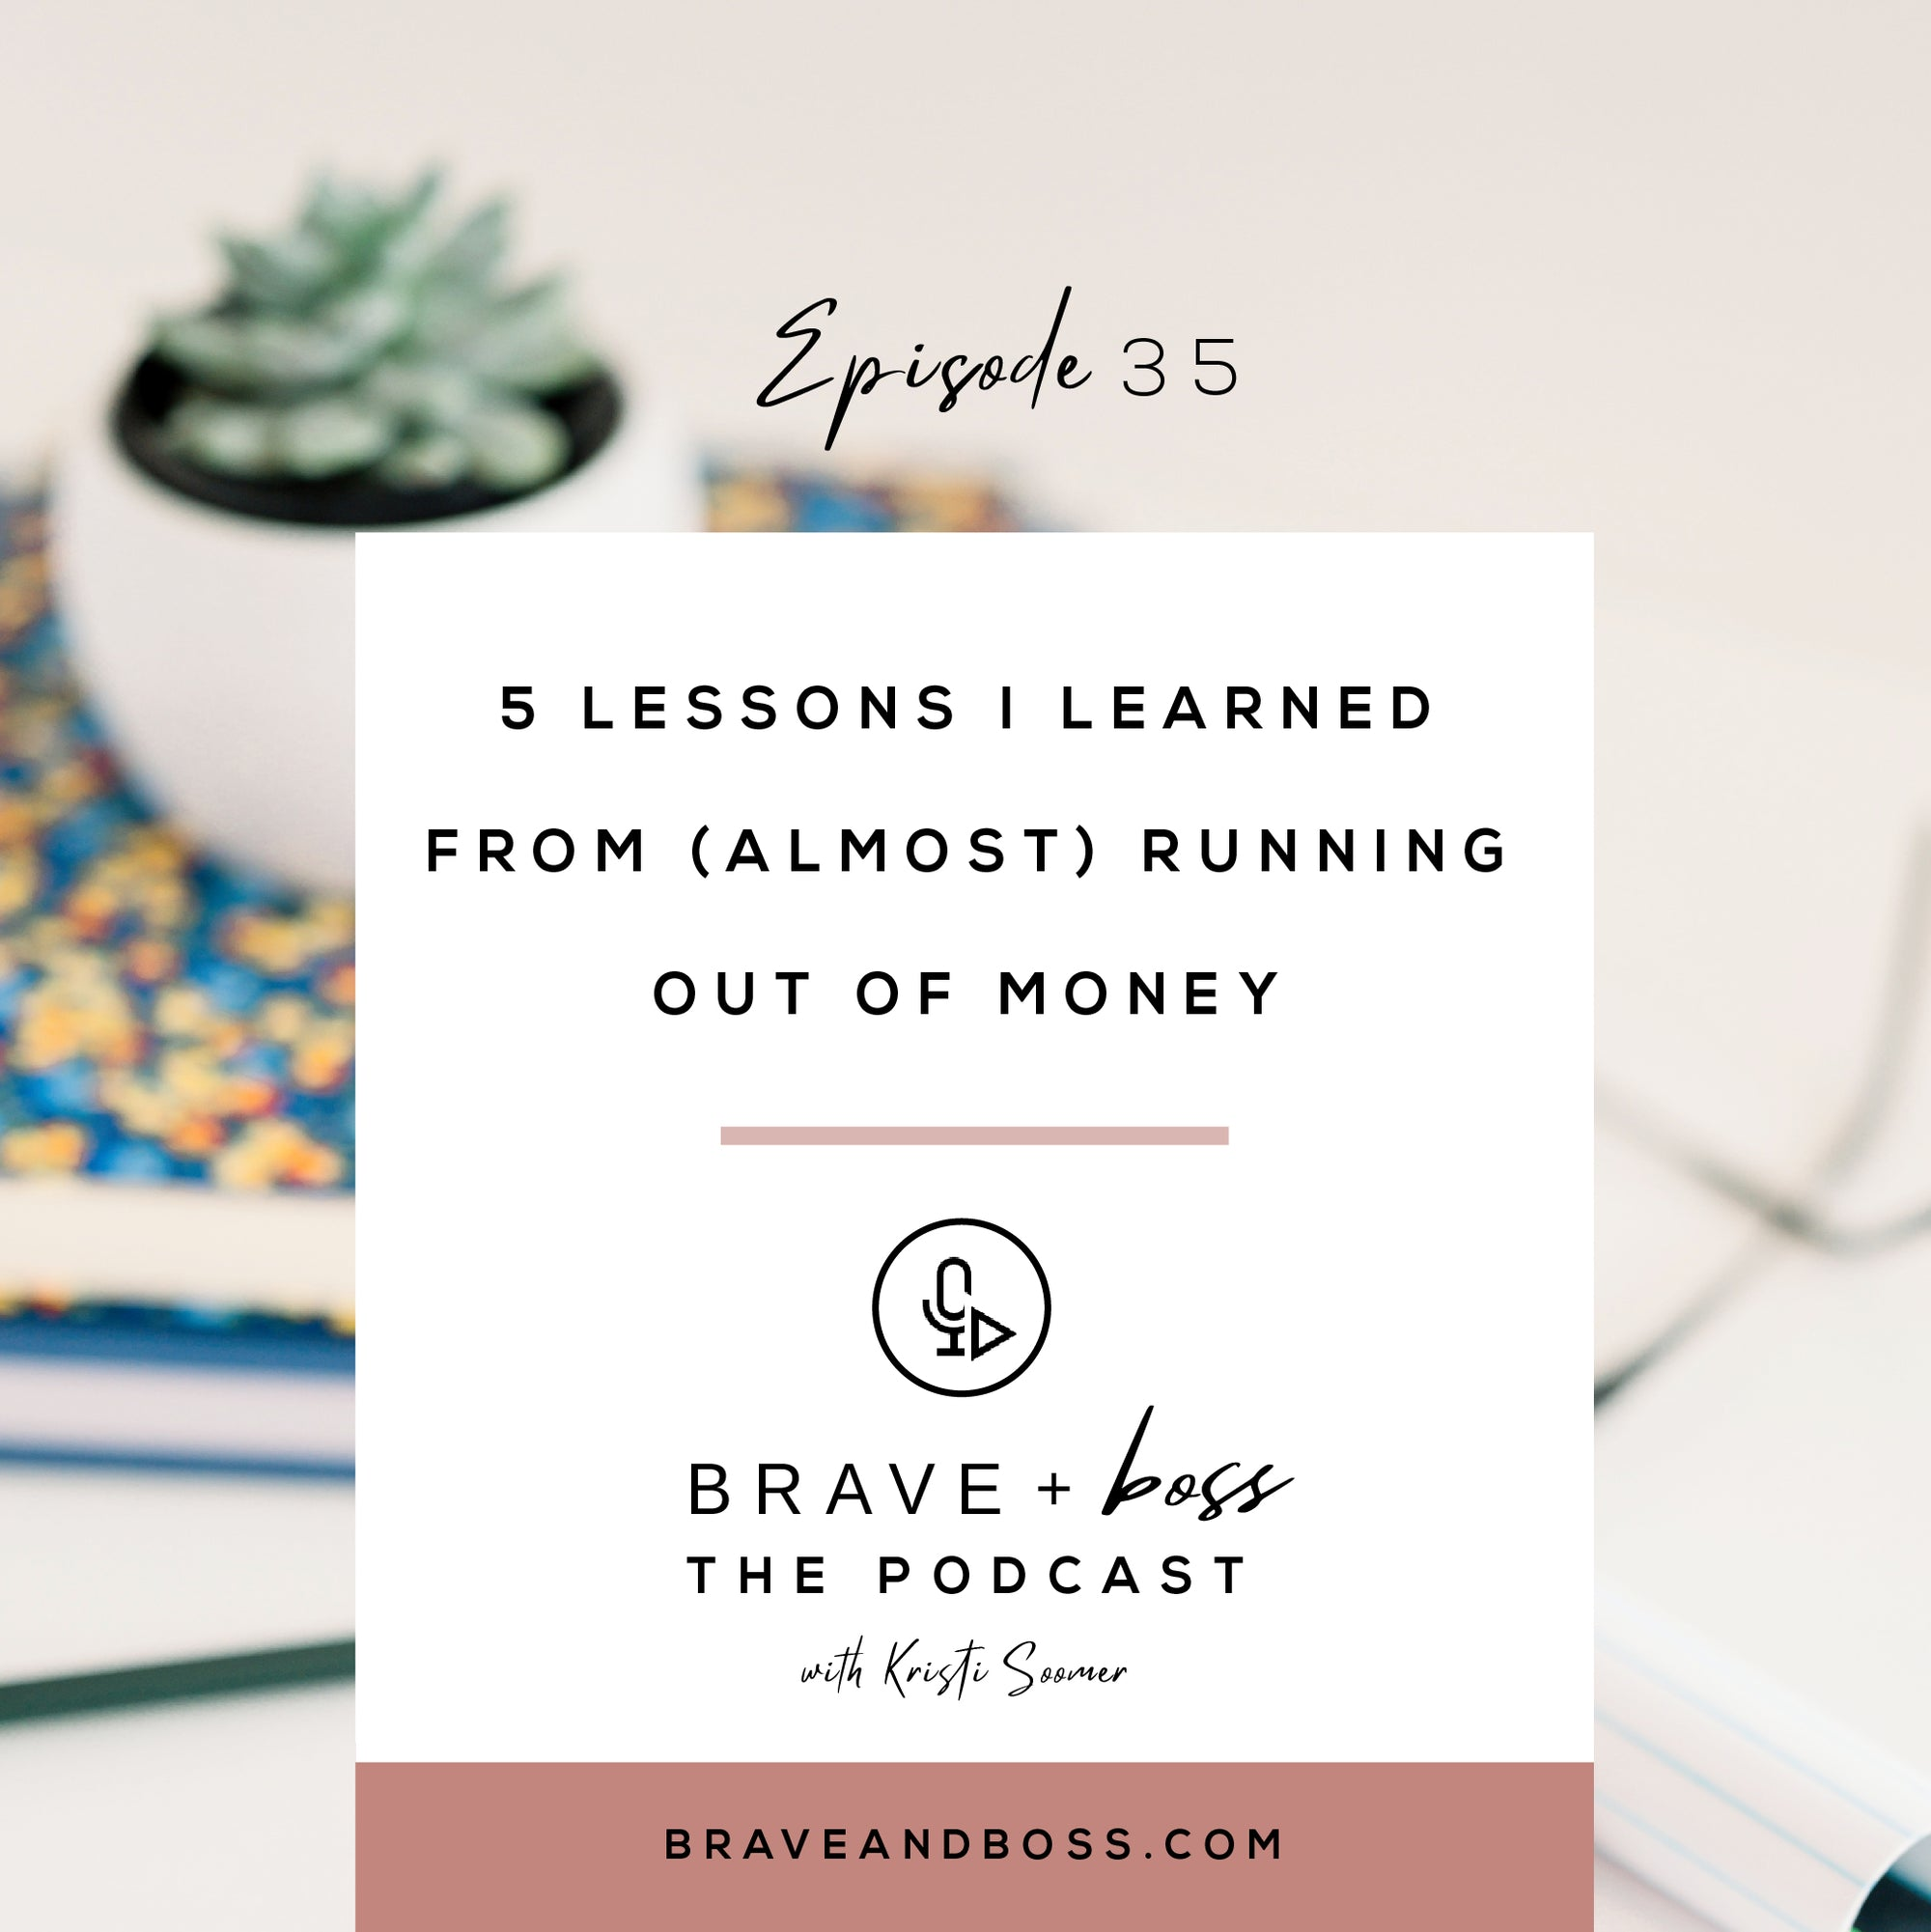 5 Lessons Learned from (Almost) Running Out of Money